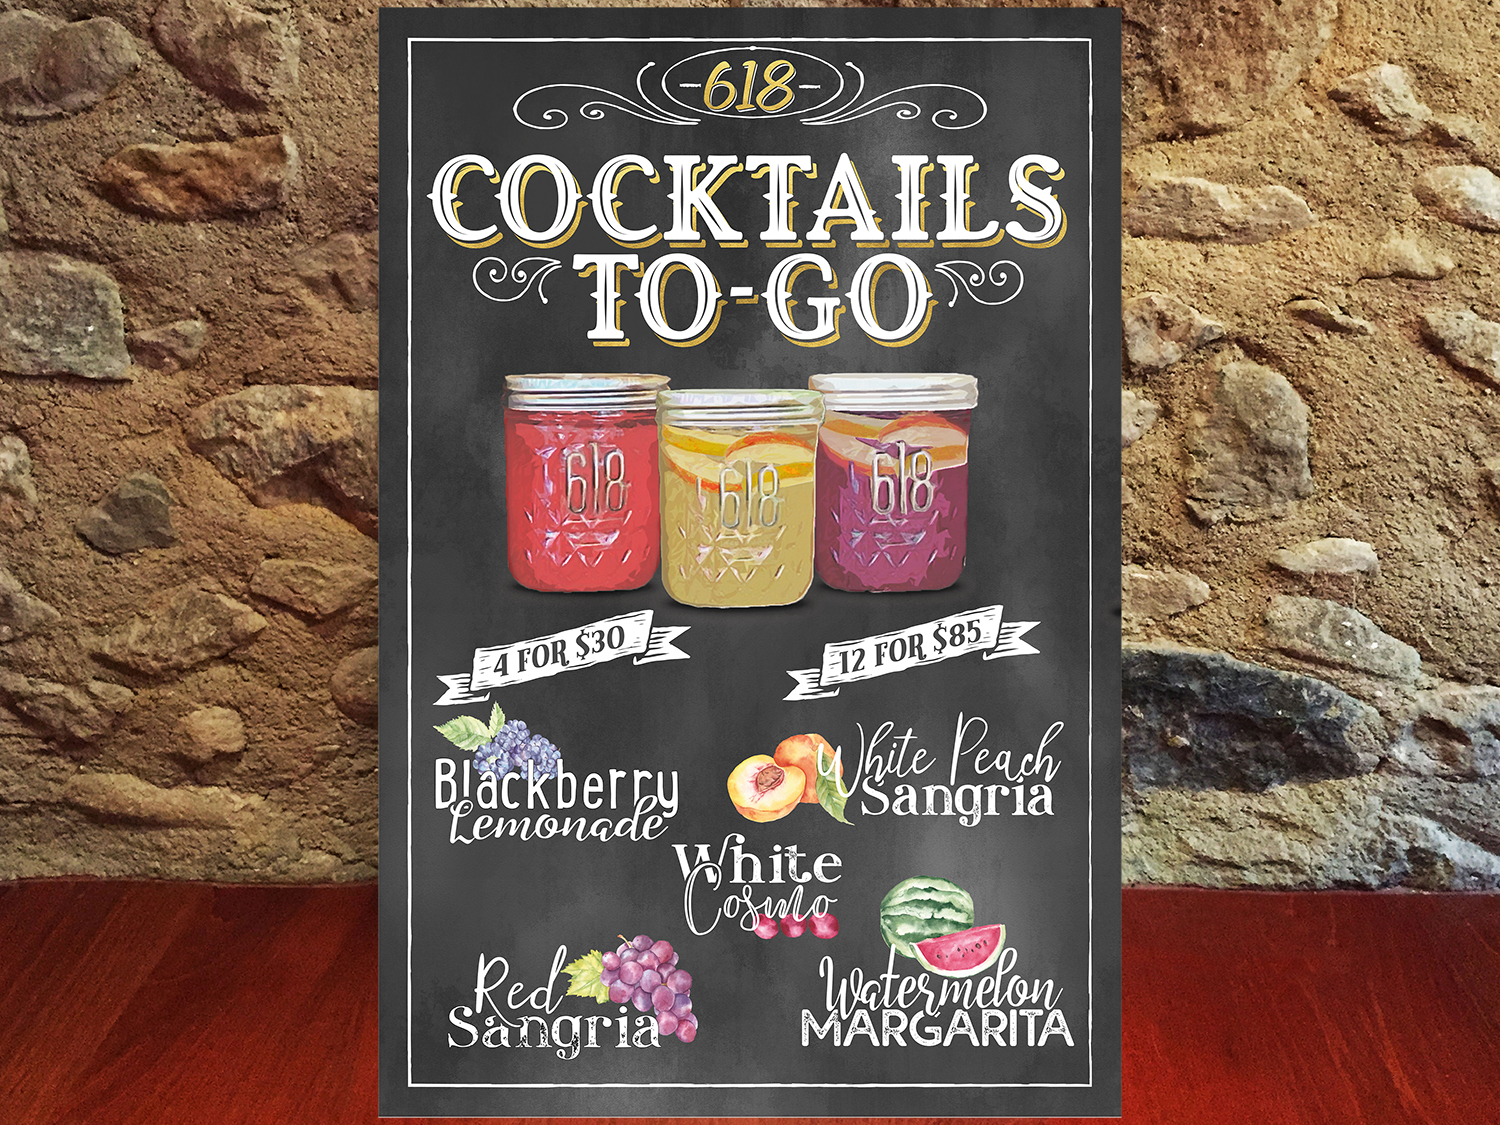 Cocktail menu 618